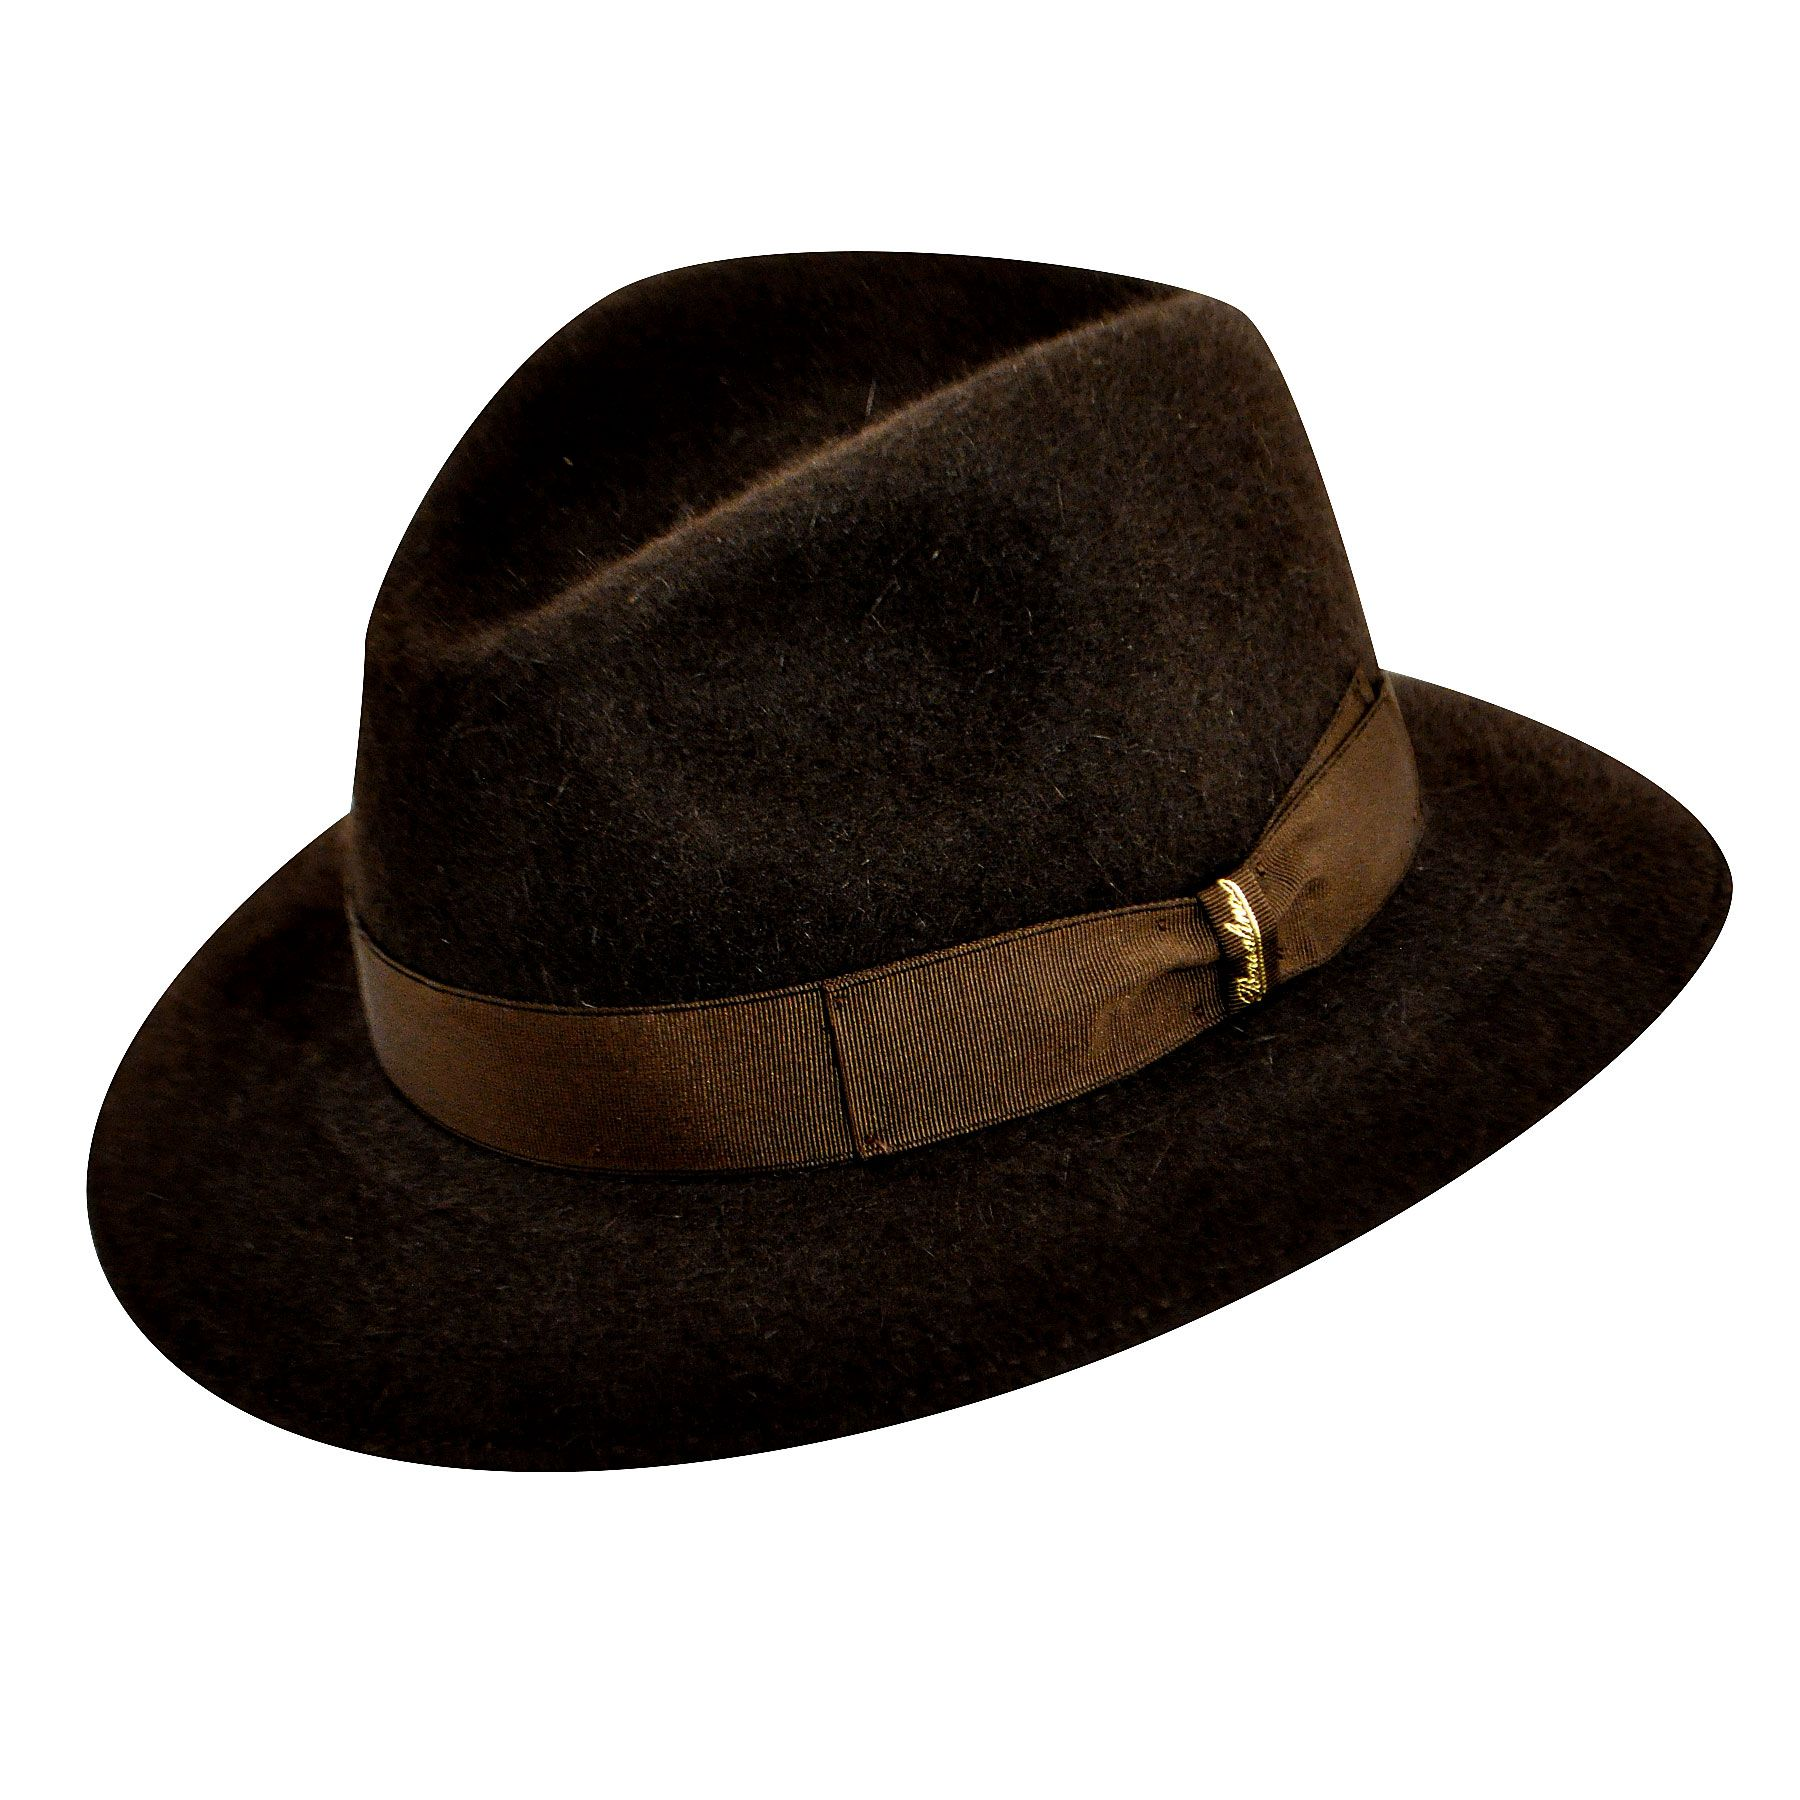 1940s Men S Hats Vintage Styles History Buying Guide Mens Hats Fashion Hats For Men Mens Hats Vintage